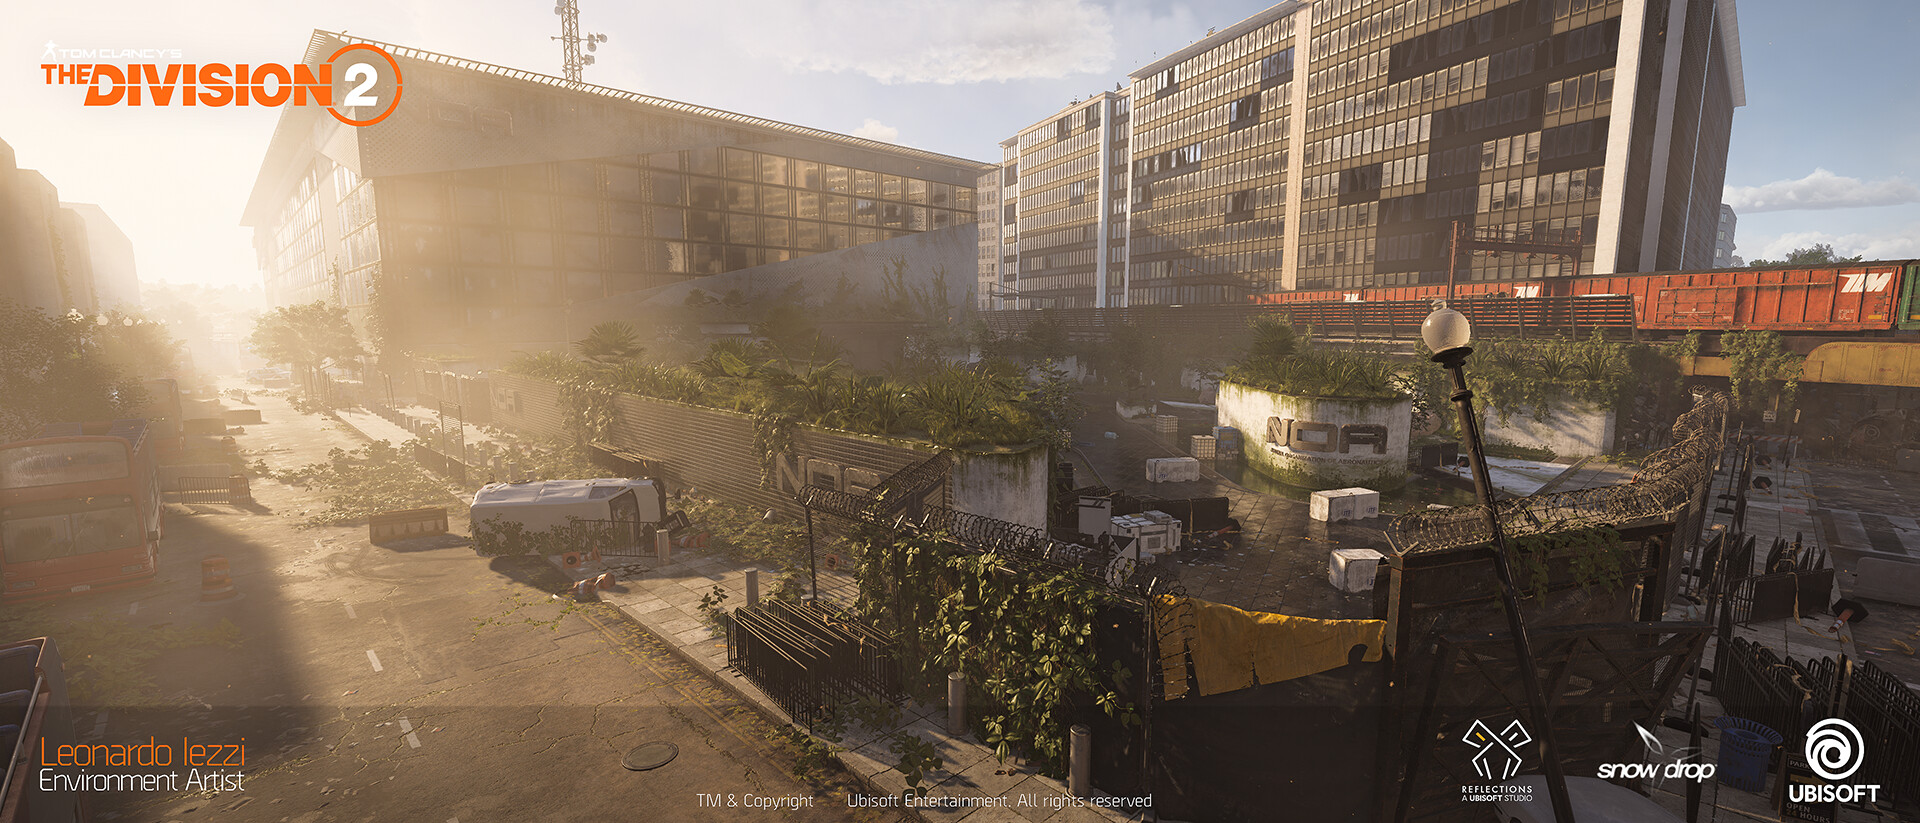 Leonardo iezzi leonardo iezzi the division 2 environment art 01 plaza 012 wide